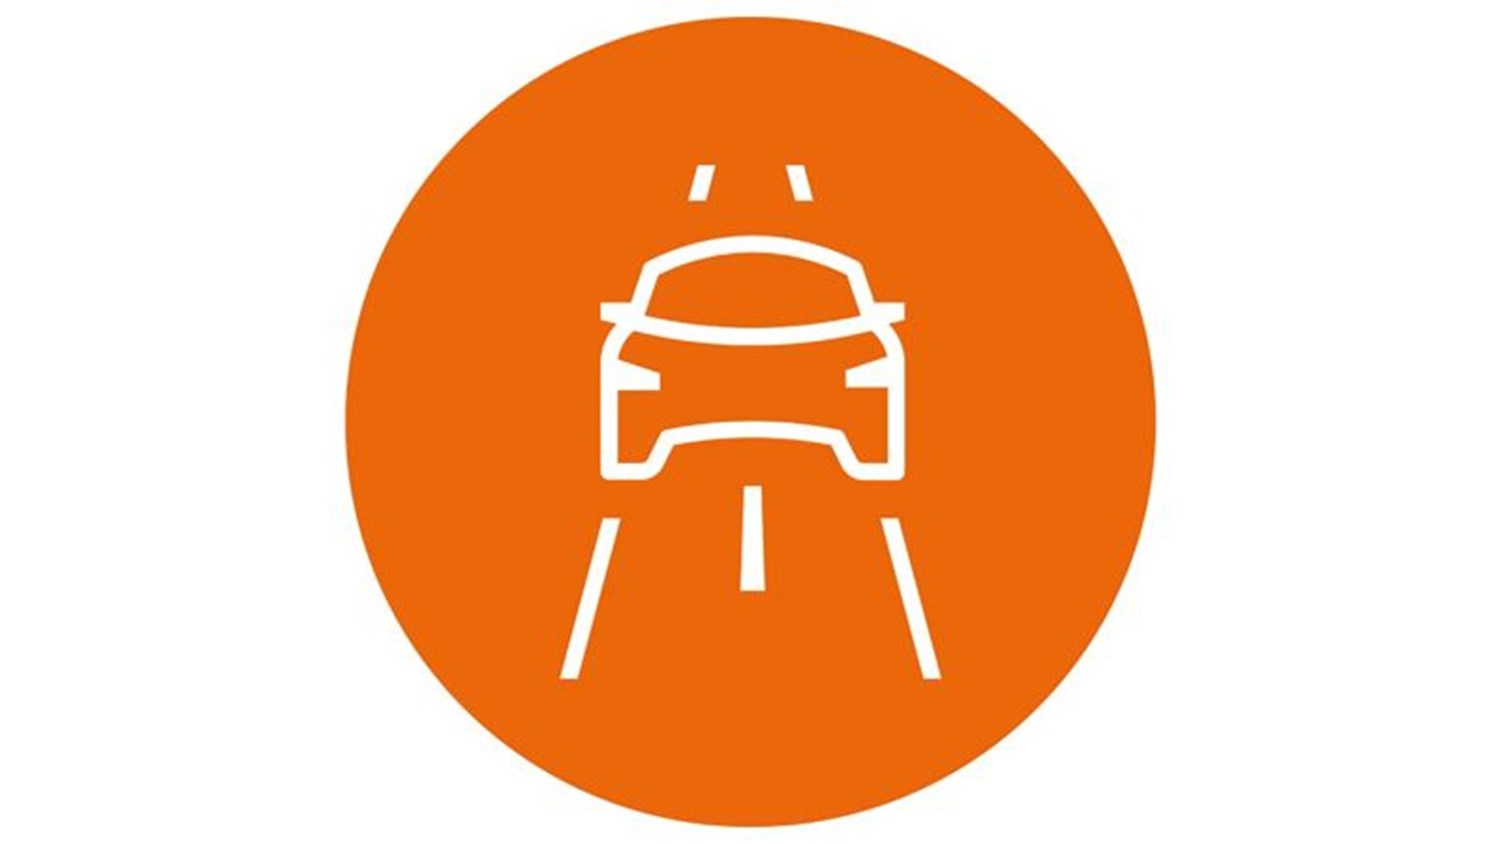 orange circle with white car icon driving on a road